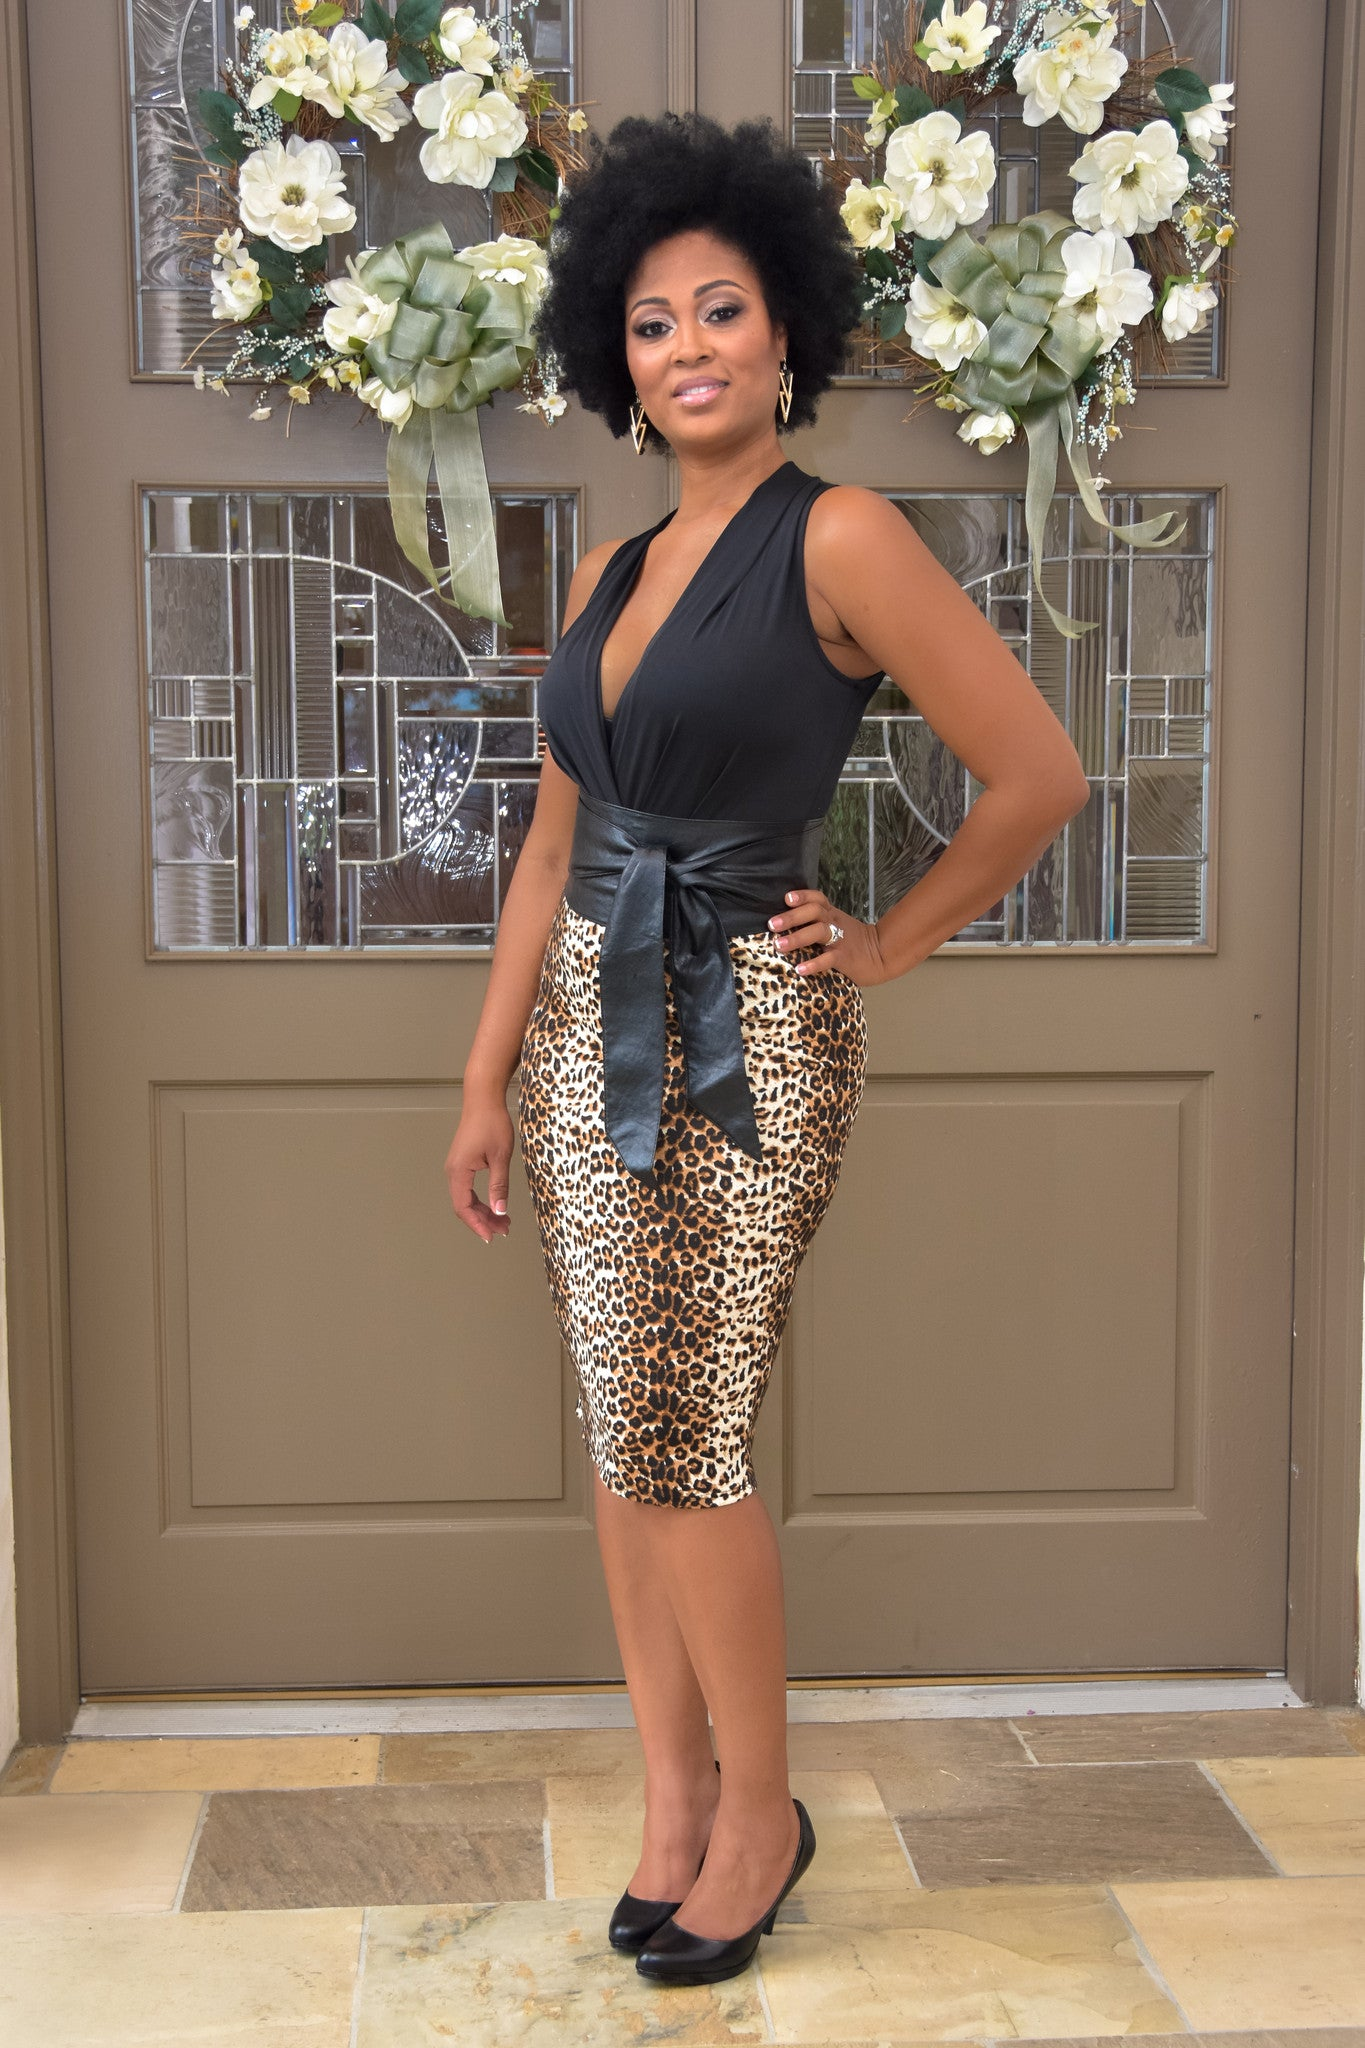 Jasmine  (Top and belt SOLD SEPARATELY) Top: Margeaux   Belt: Obi - Chimes Boutique  - 1